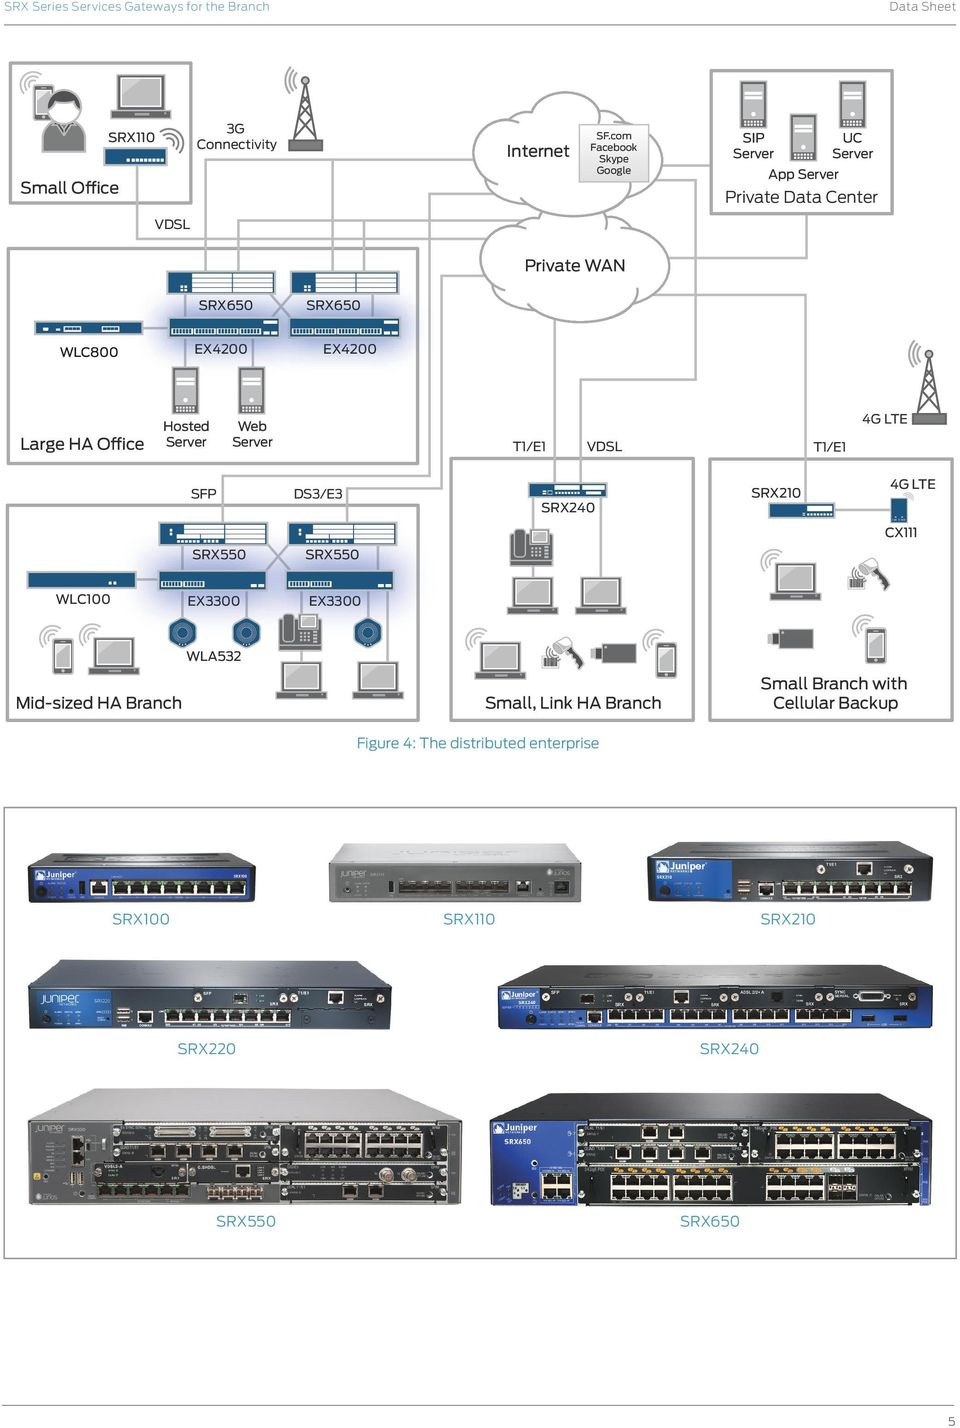 EX4200 Large HA Office Hosted Server Web Server T/E VDSL T/E 4G LTE SFP DS3/E3 SRX20 4G LTE CX SRX550 SRX550